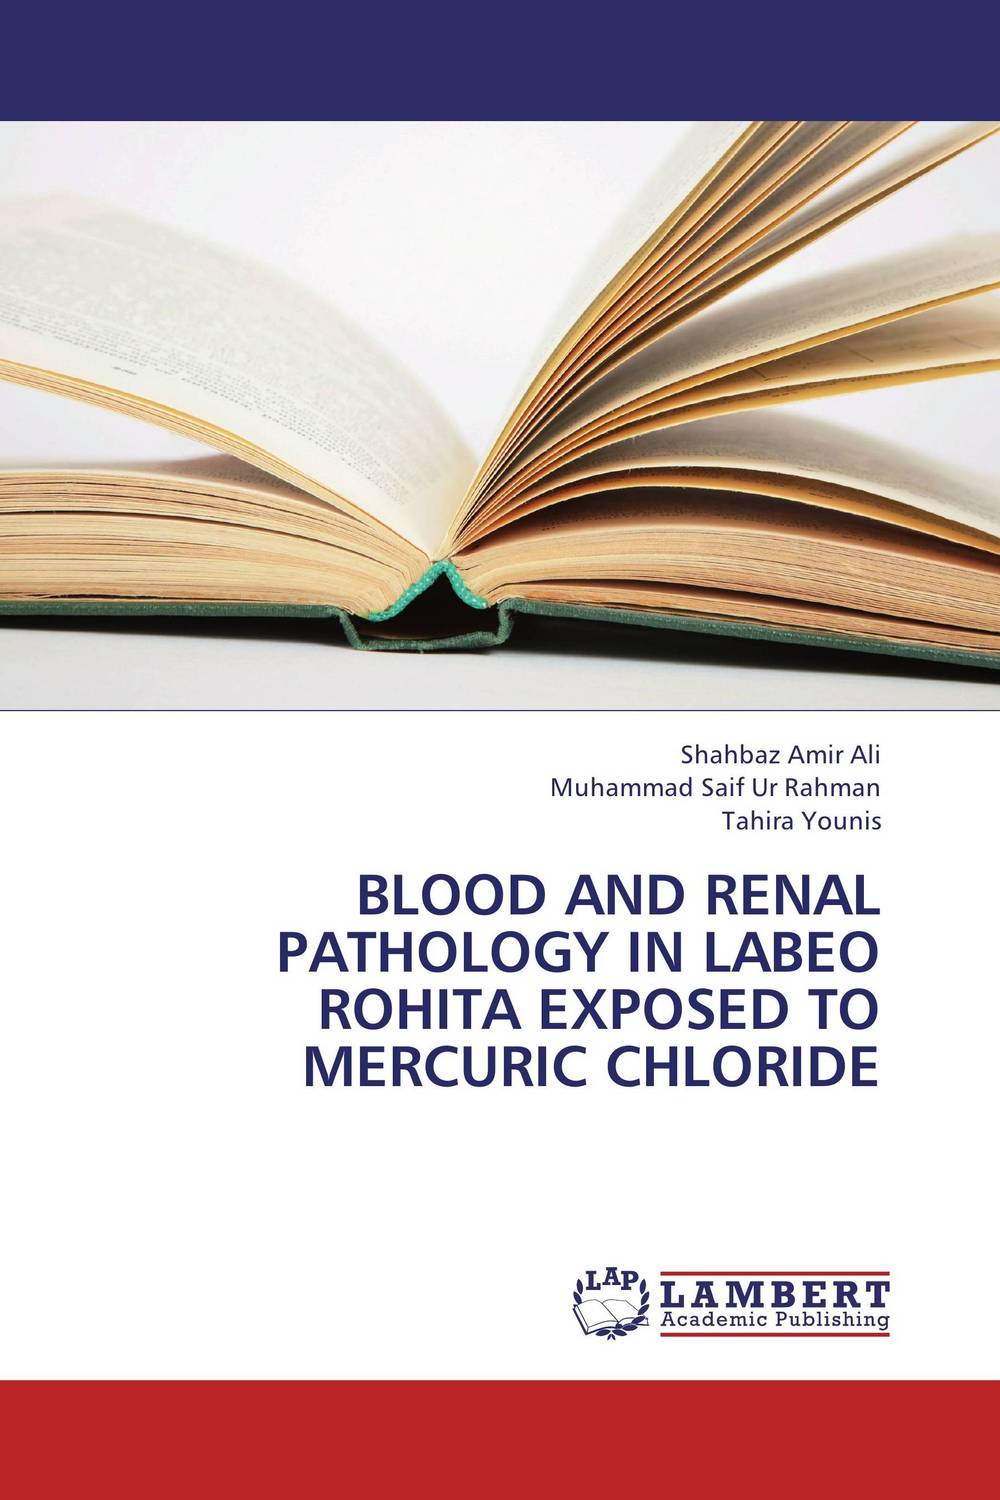 BLOOD AND RENAL PATHOLOGY IN LABEO ROHITA EXPOSED TO MERCURIC CHLORIDE